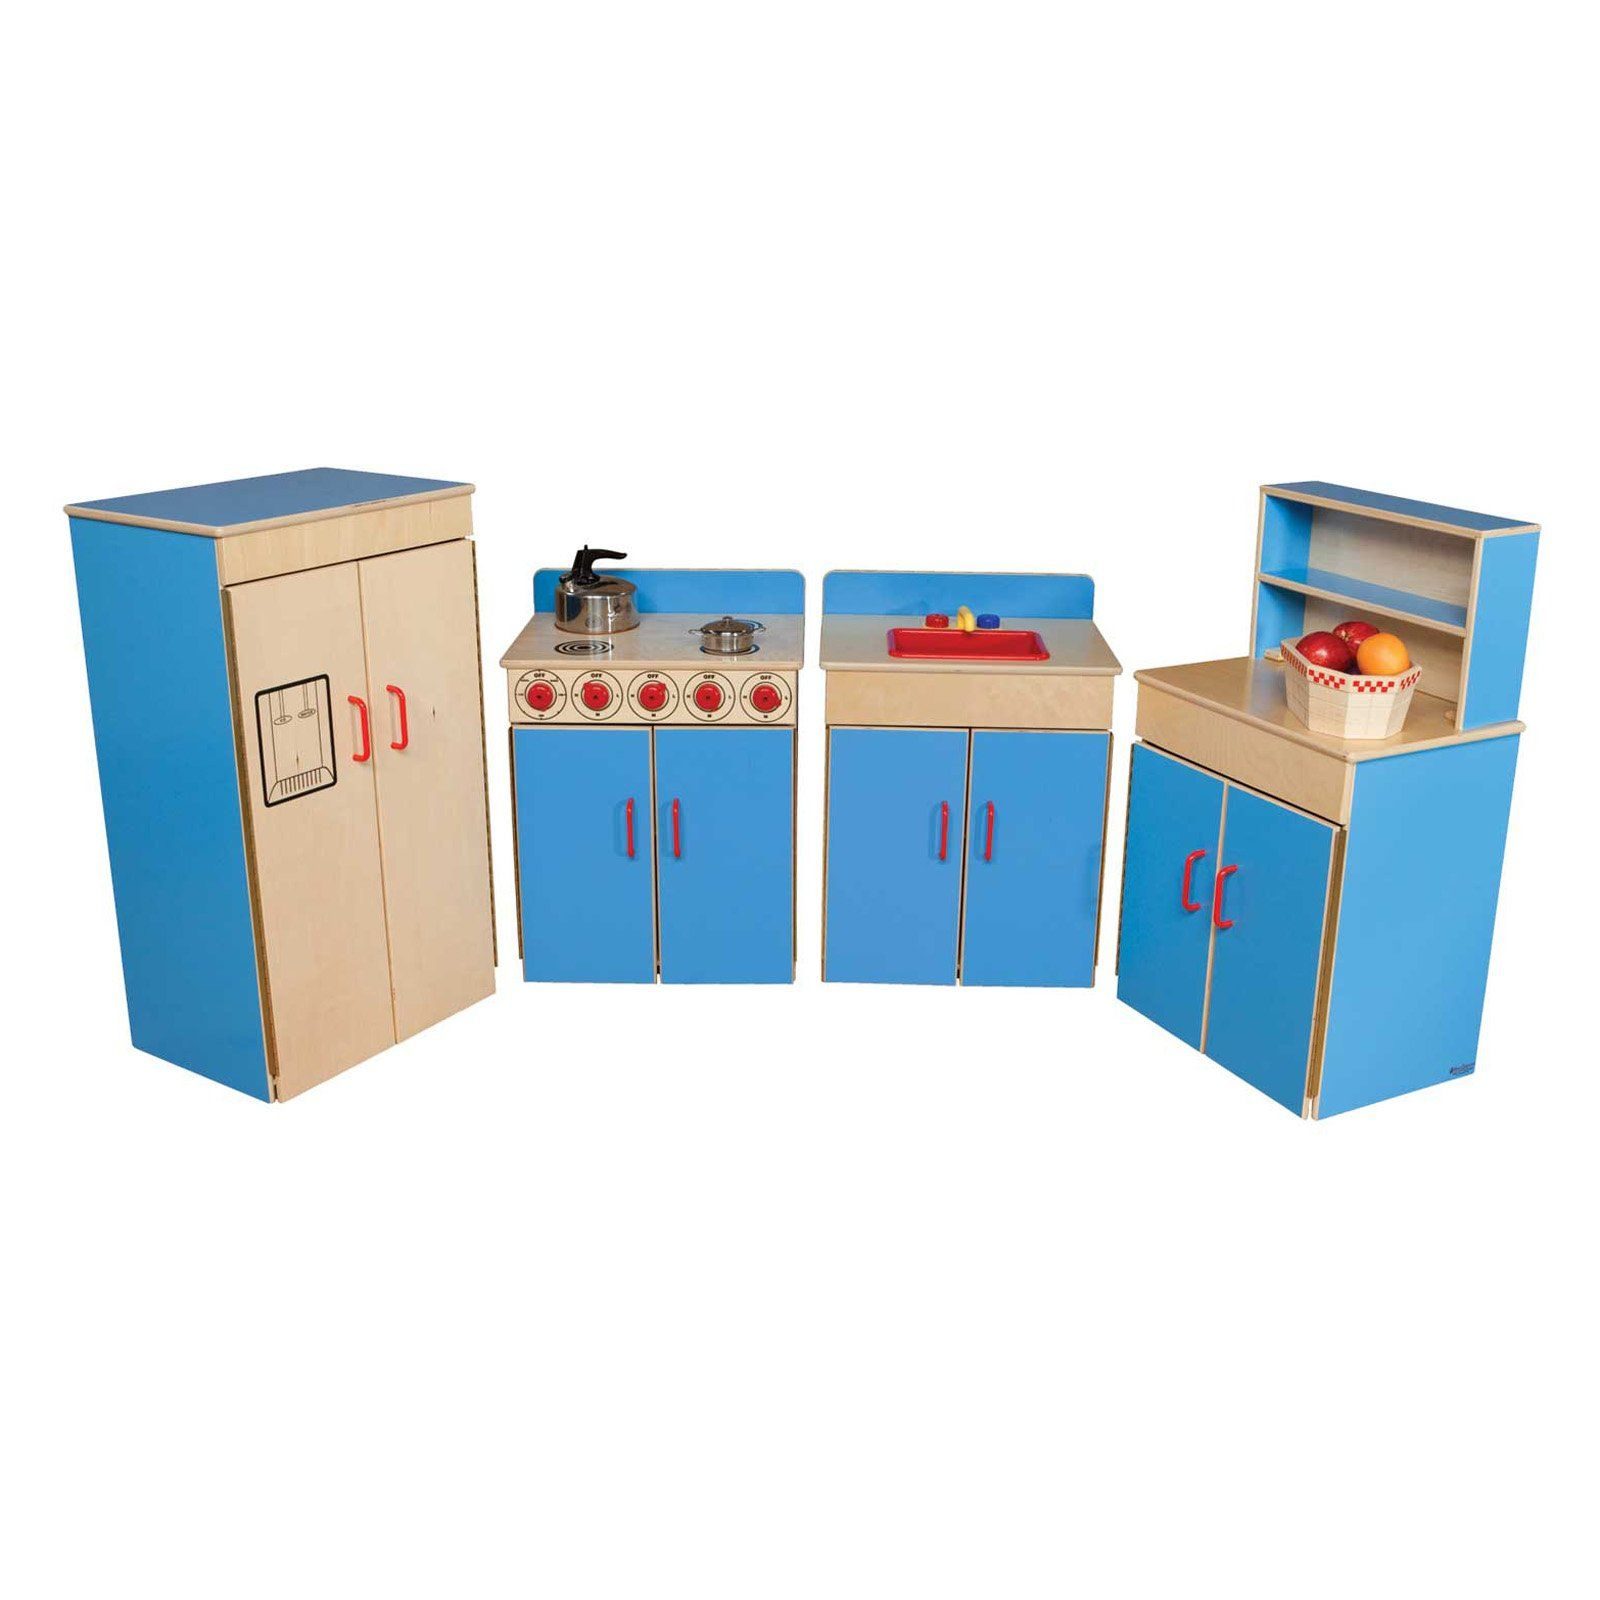 Wood Designs Classic 4 Piece Play Kitchen Set 679 99